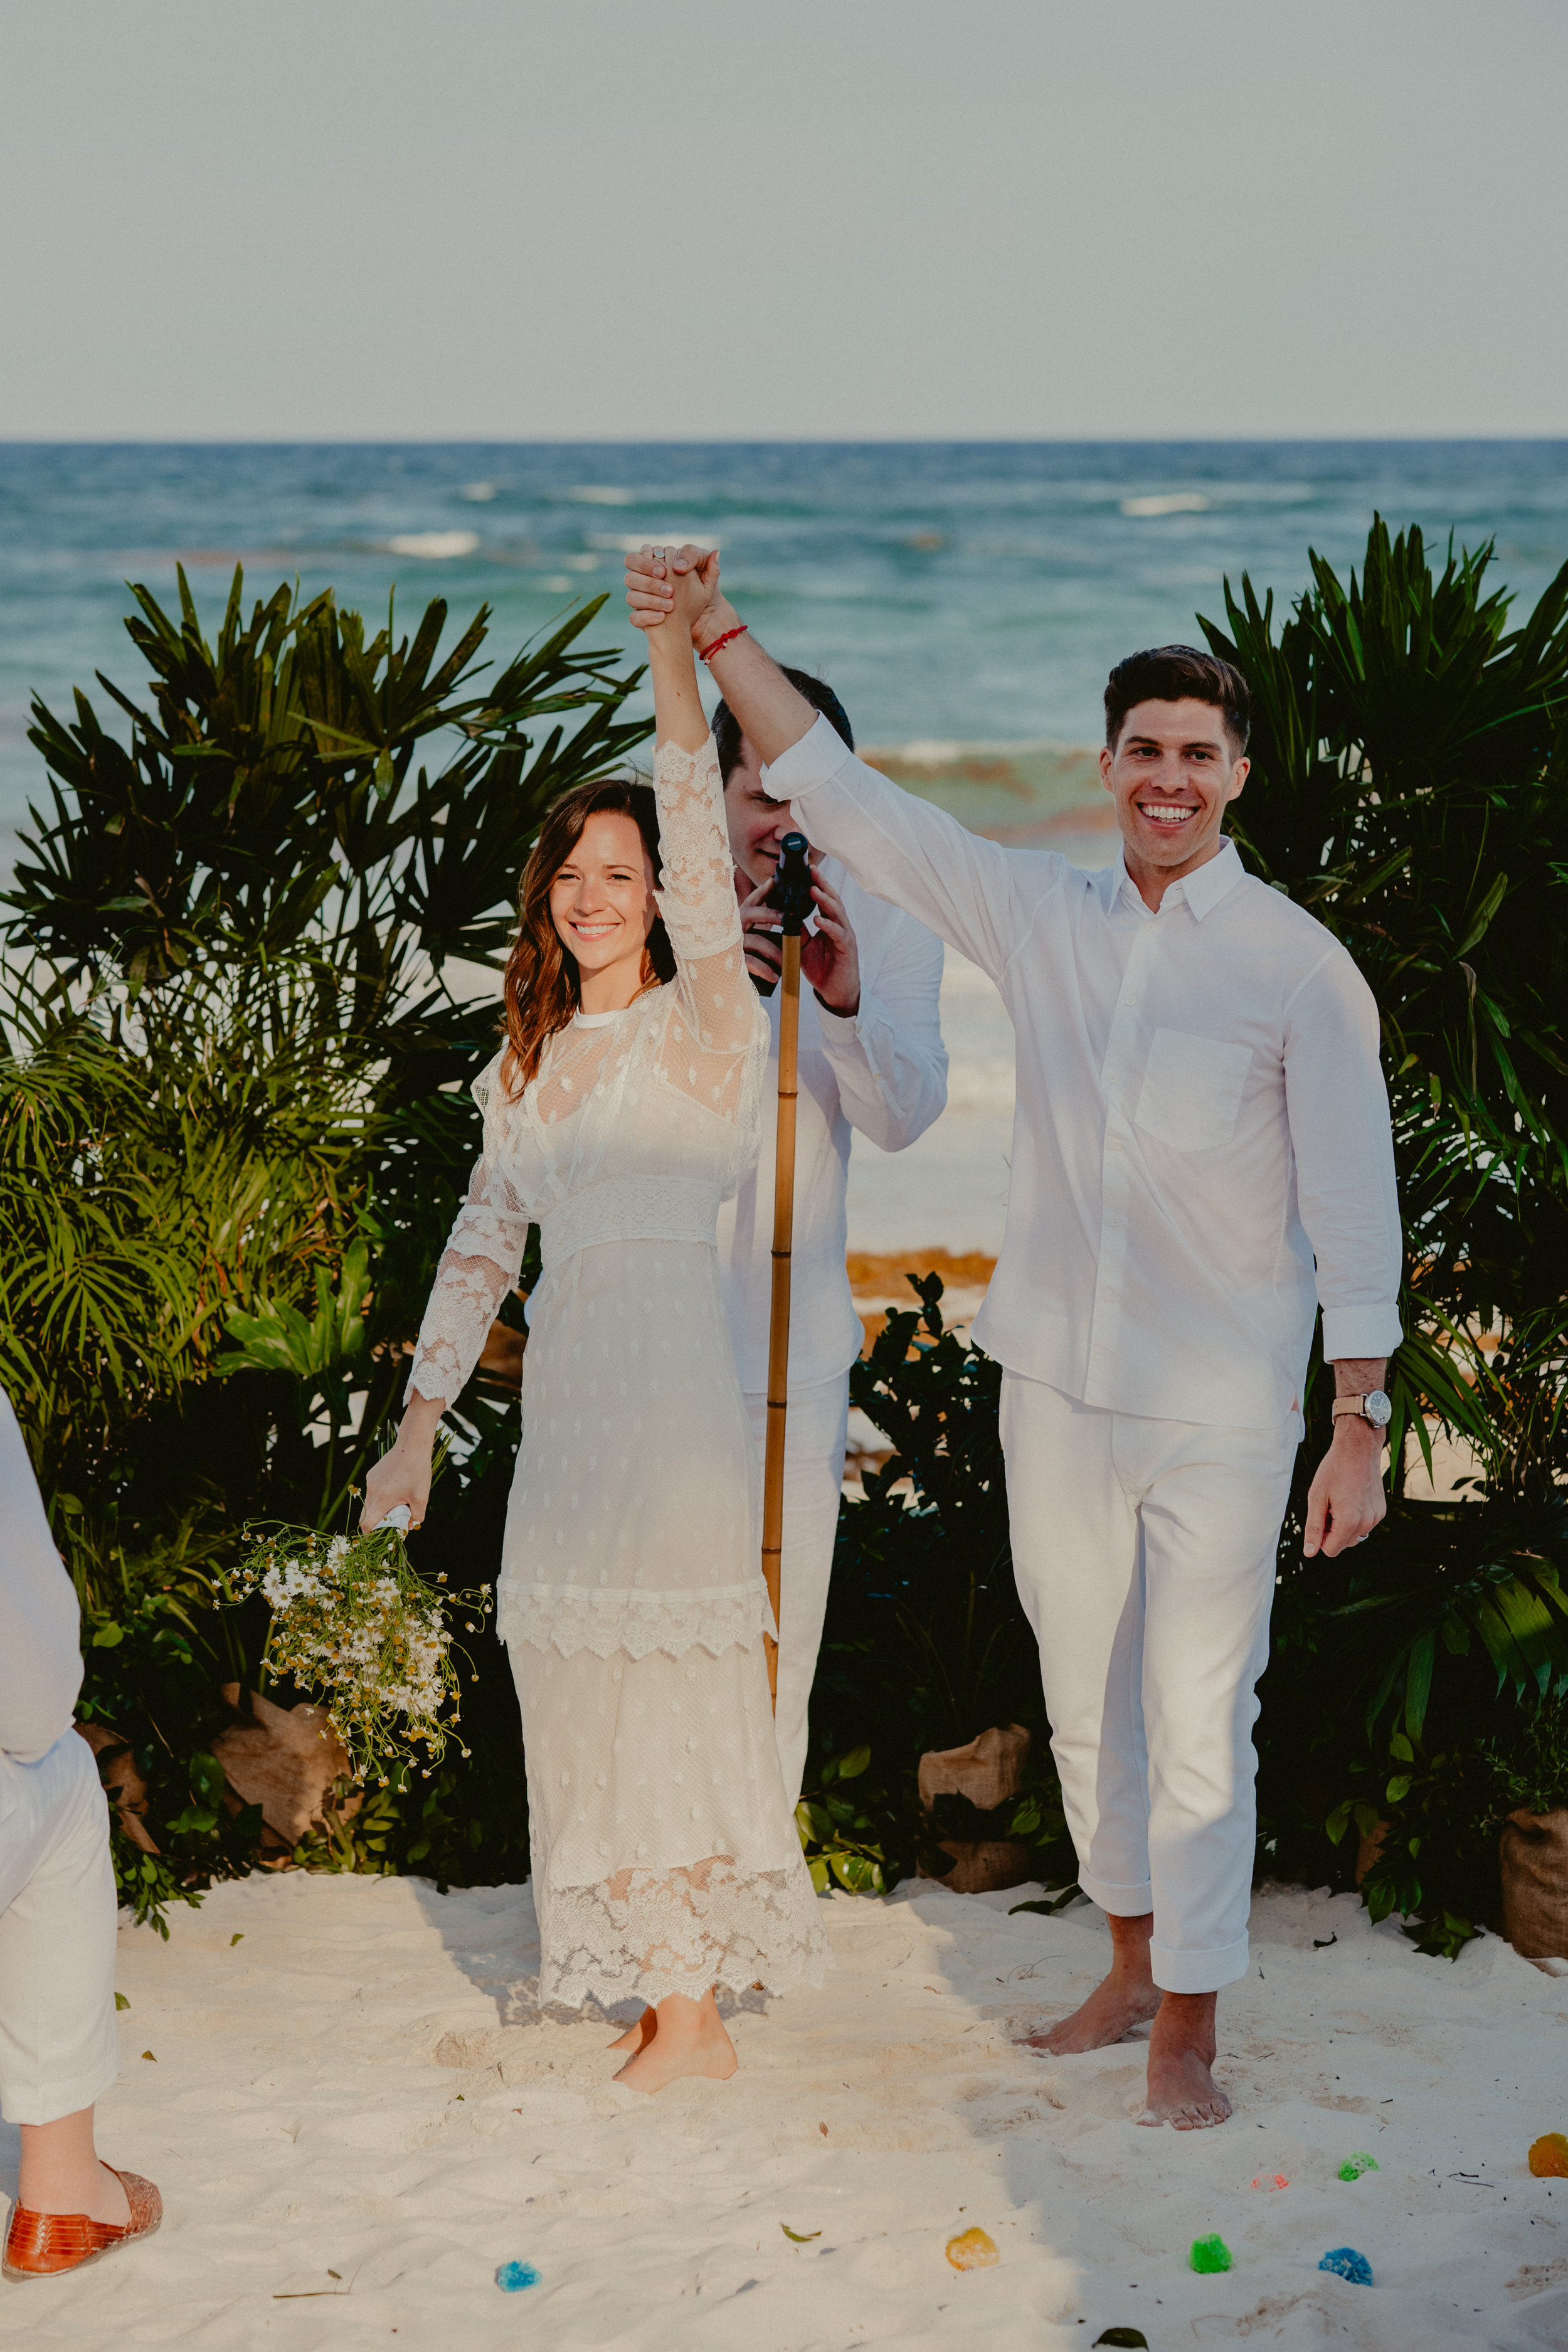 Joanna-and-Cameron_Ahua_Tulum_Wedding_Chellise_MIchael-Photography-314.jpg